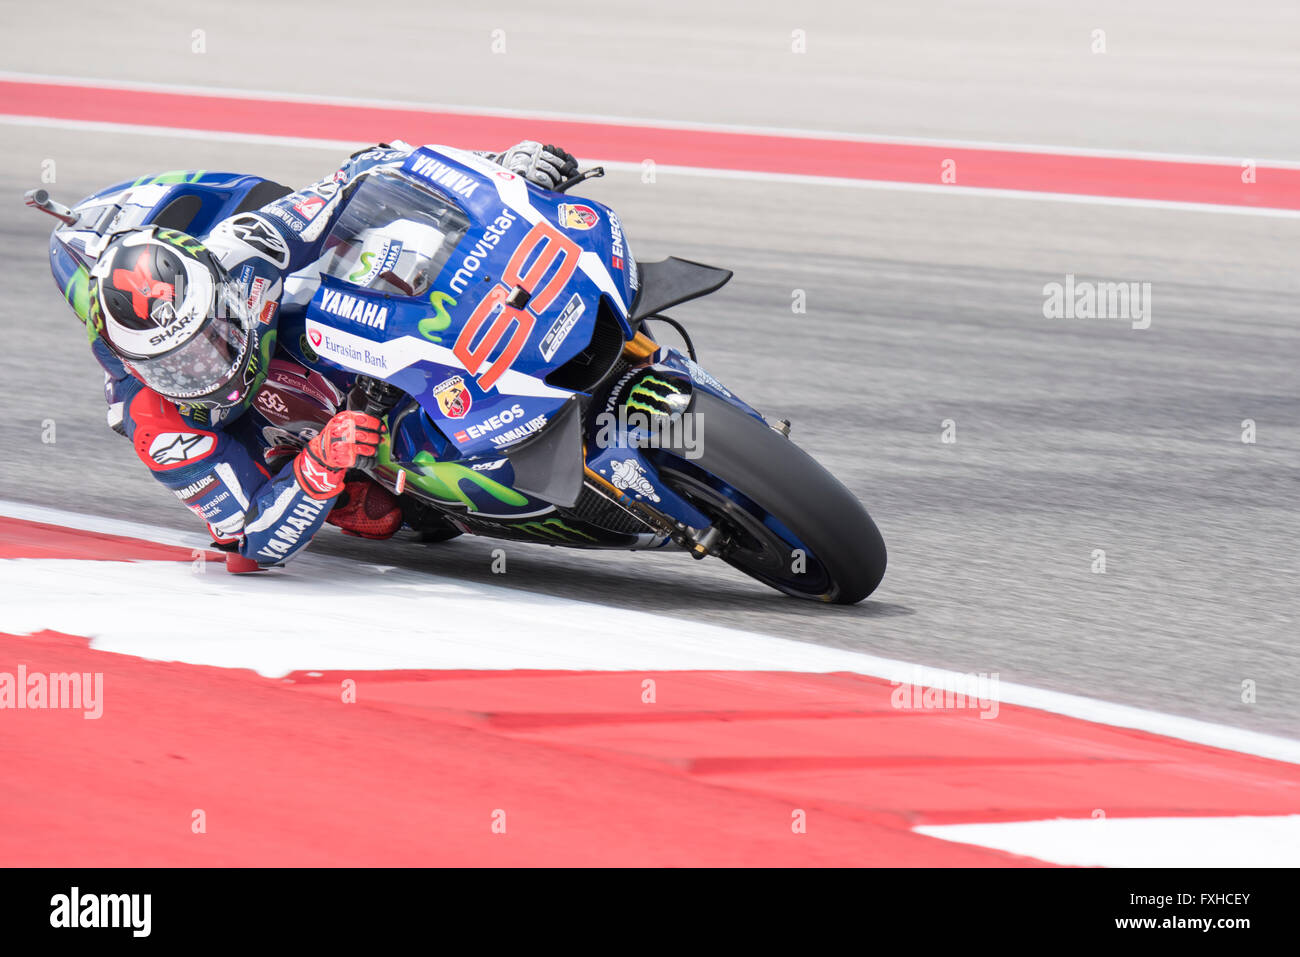 Jorge Lorenzo of Movistar Yamaha on his way to winning the 2016 Red Bull Grand Prix of the Americas at Circuit of Stock Photo